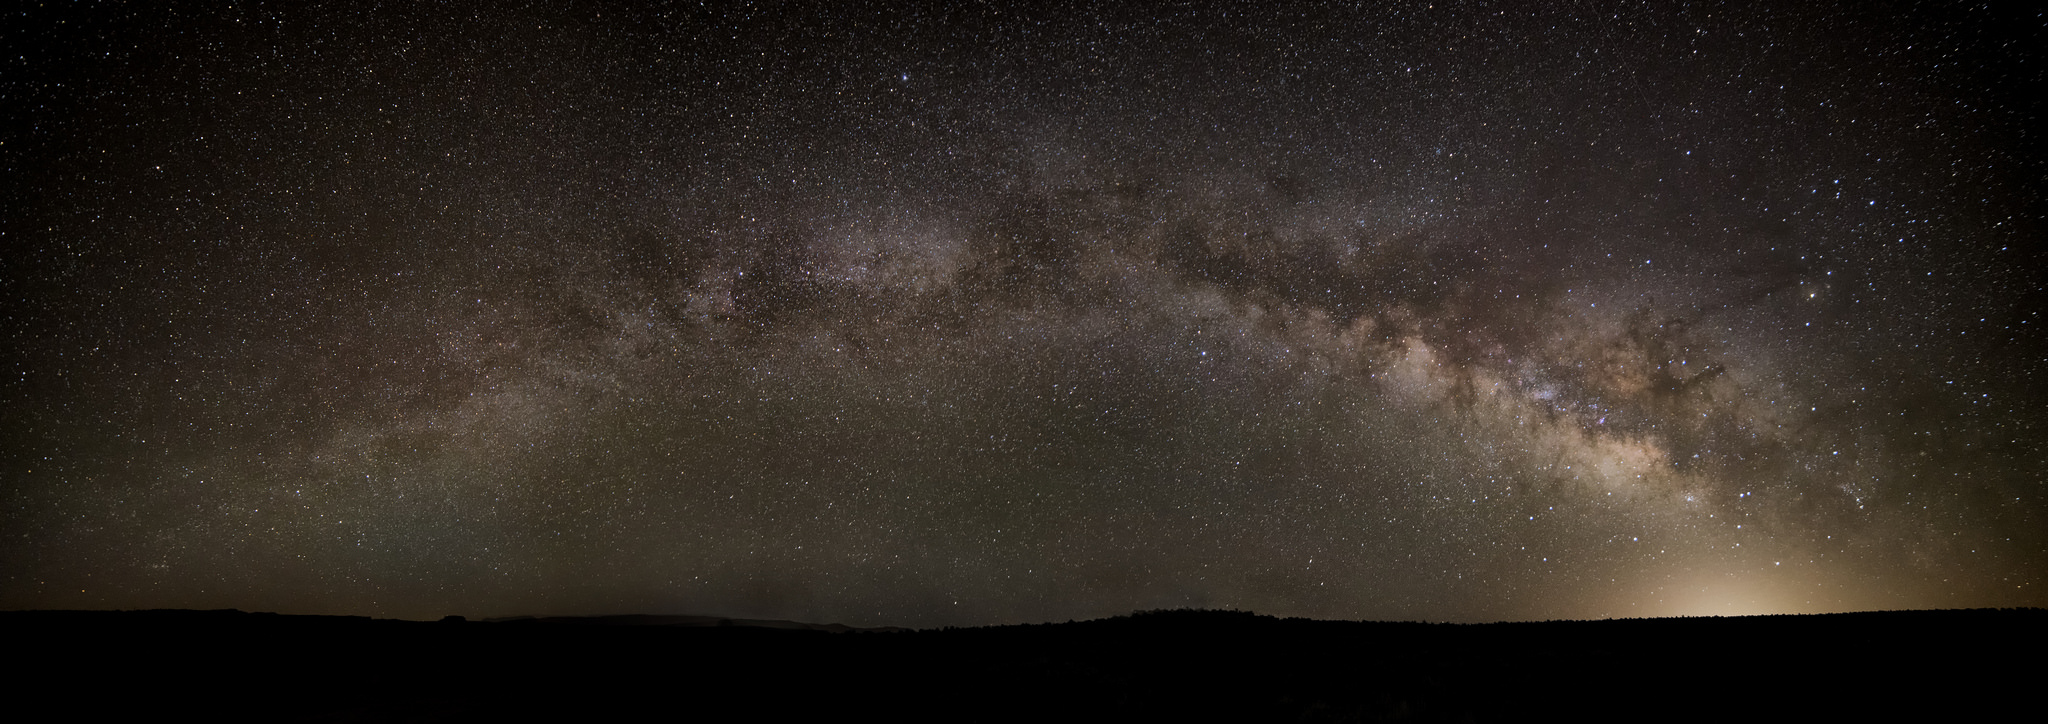 An image displaying the astrophotography capabilities of the Rokinon 14mm f/2.8.